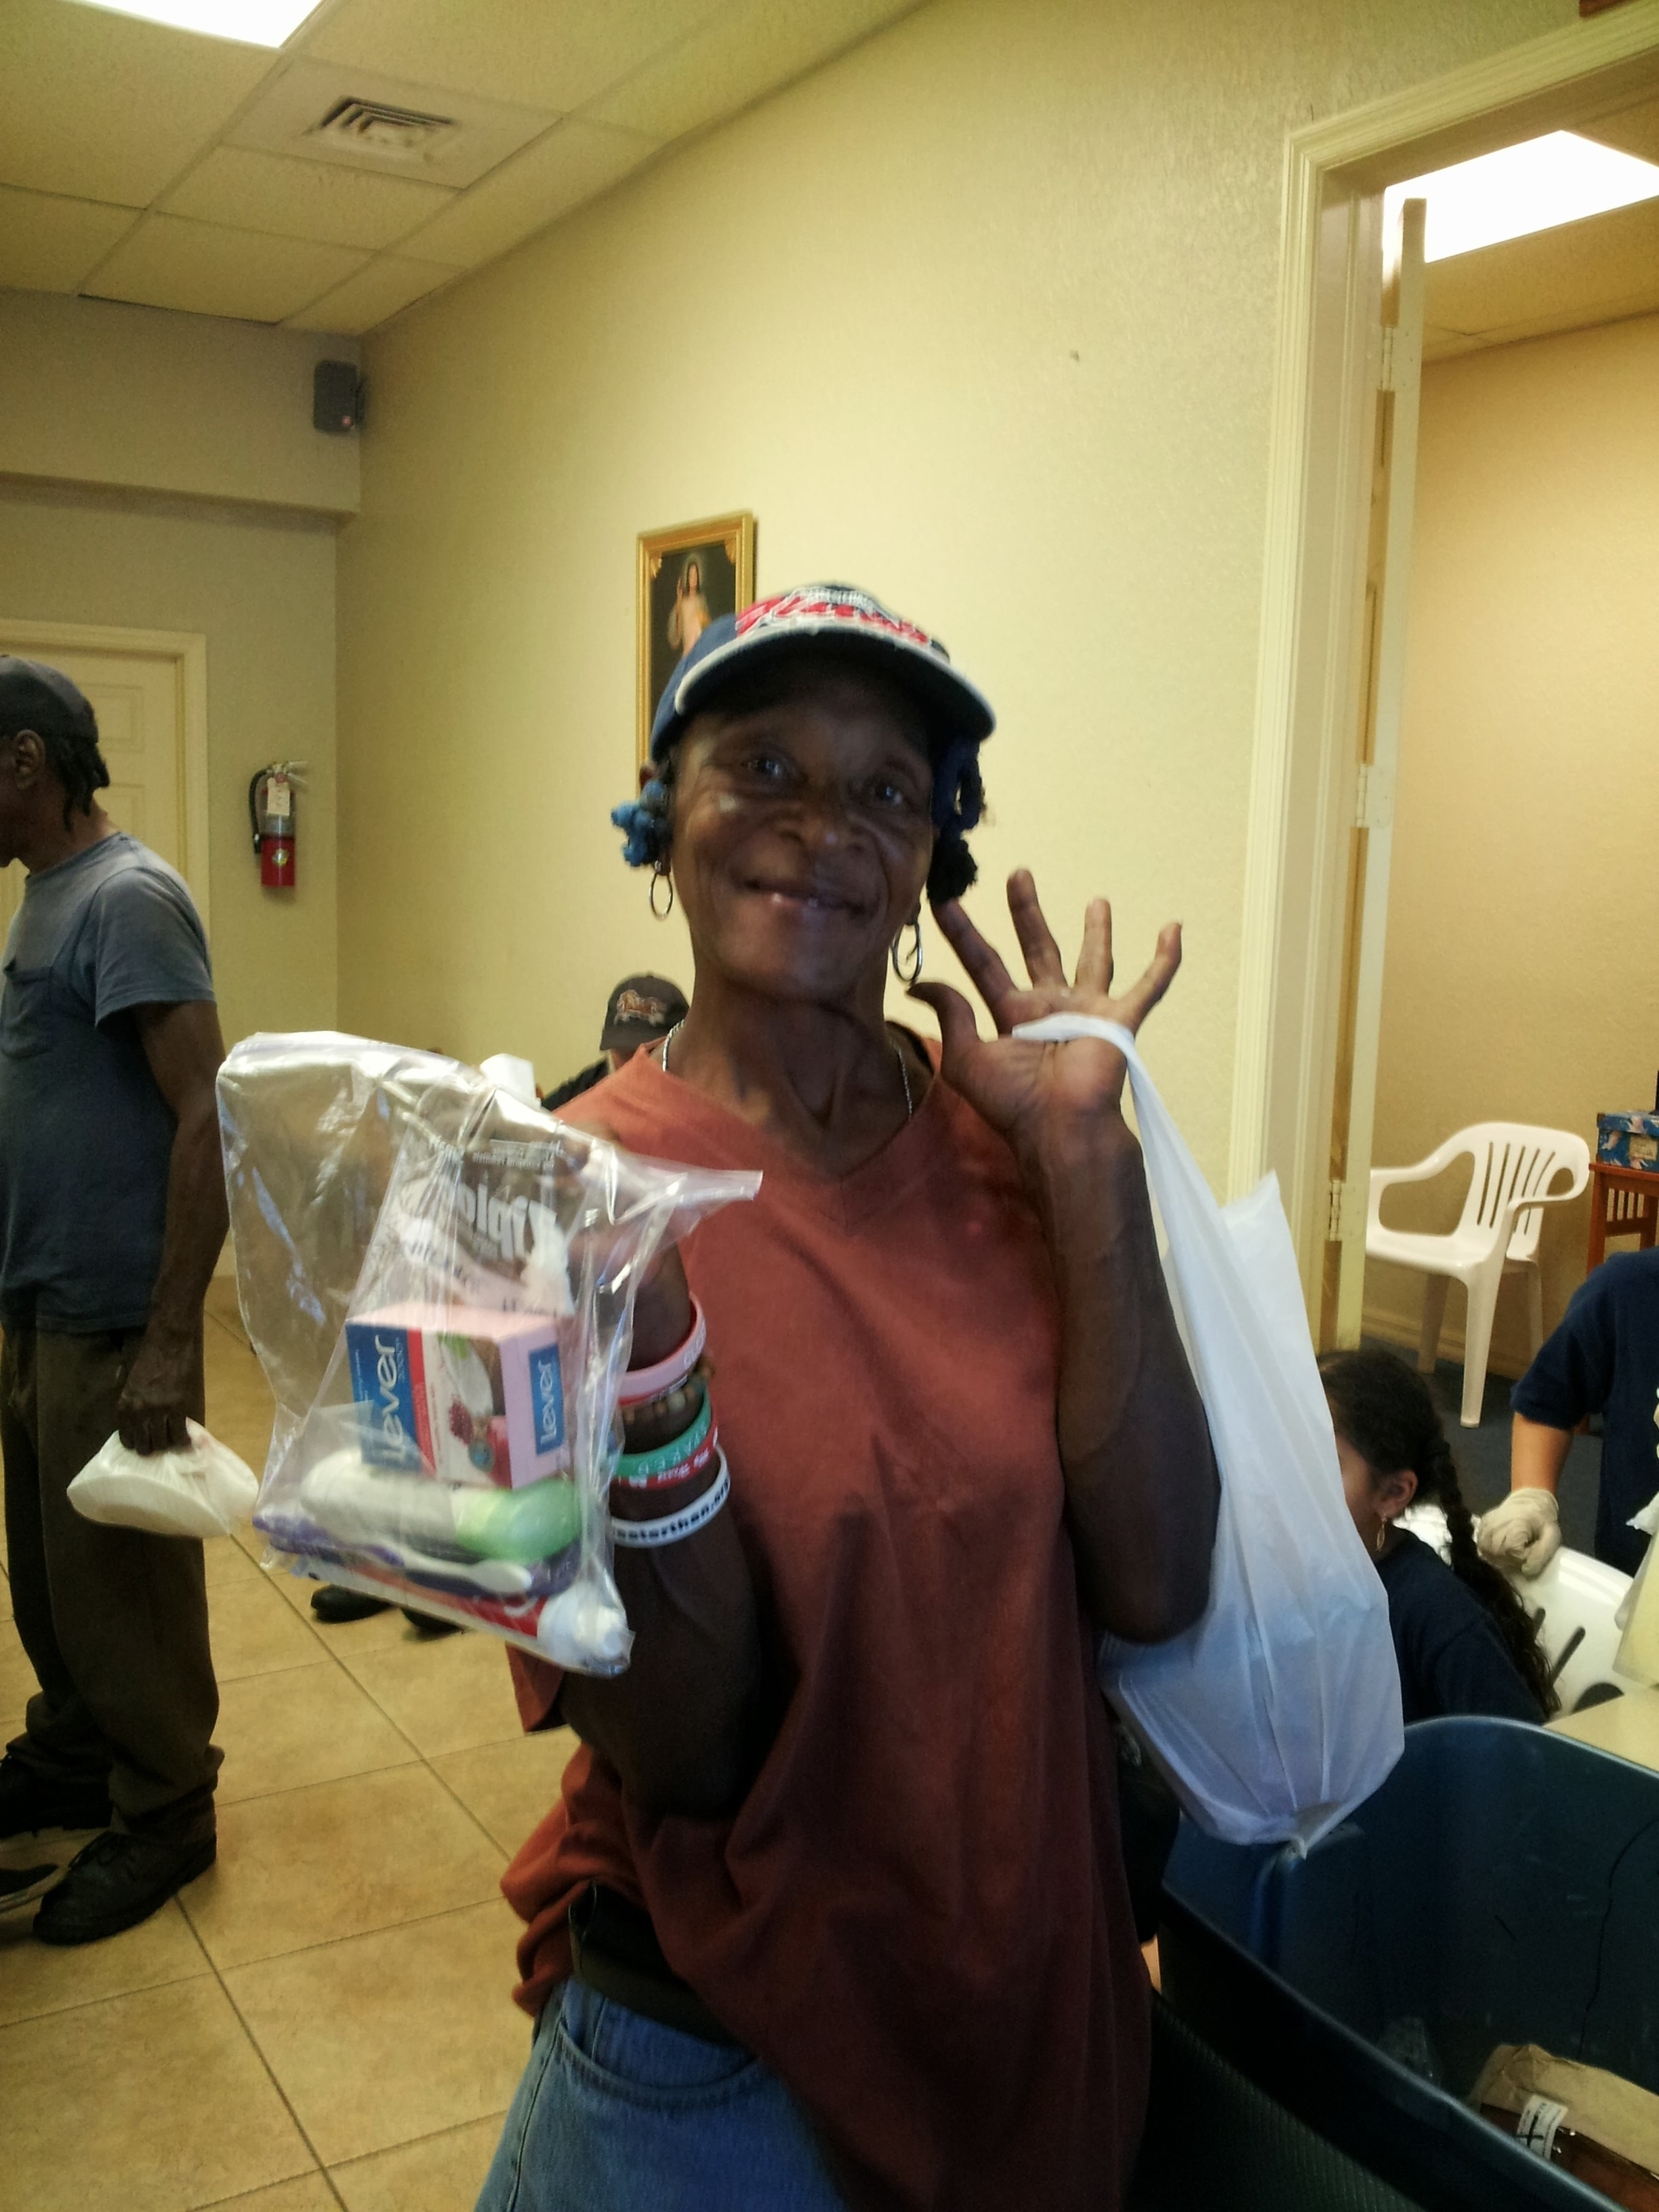 A woman receives a hygiene kit from non profit organization.